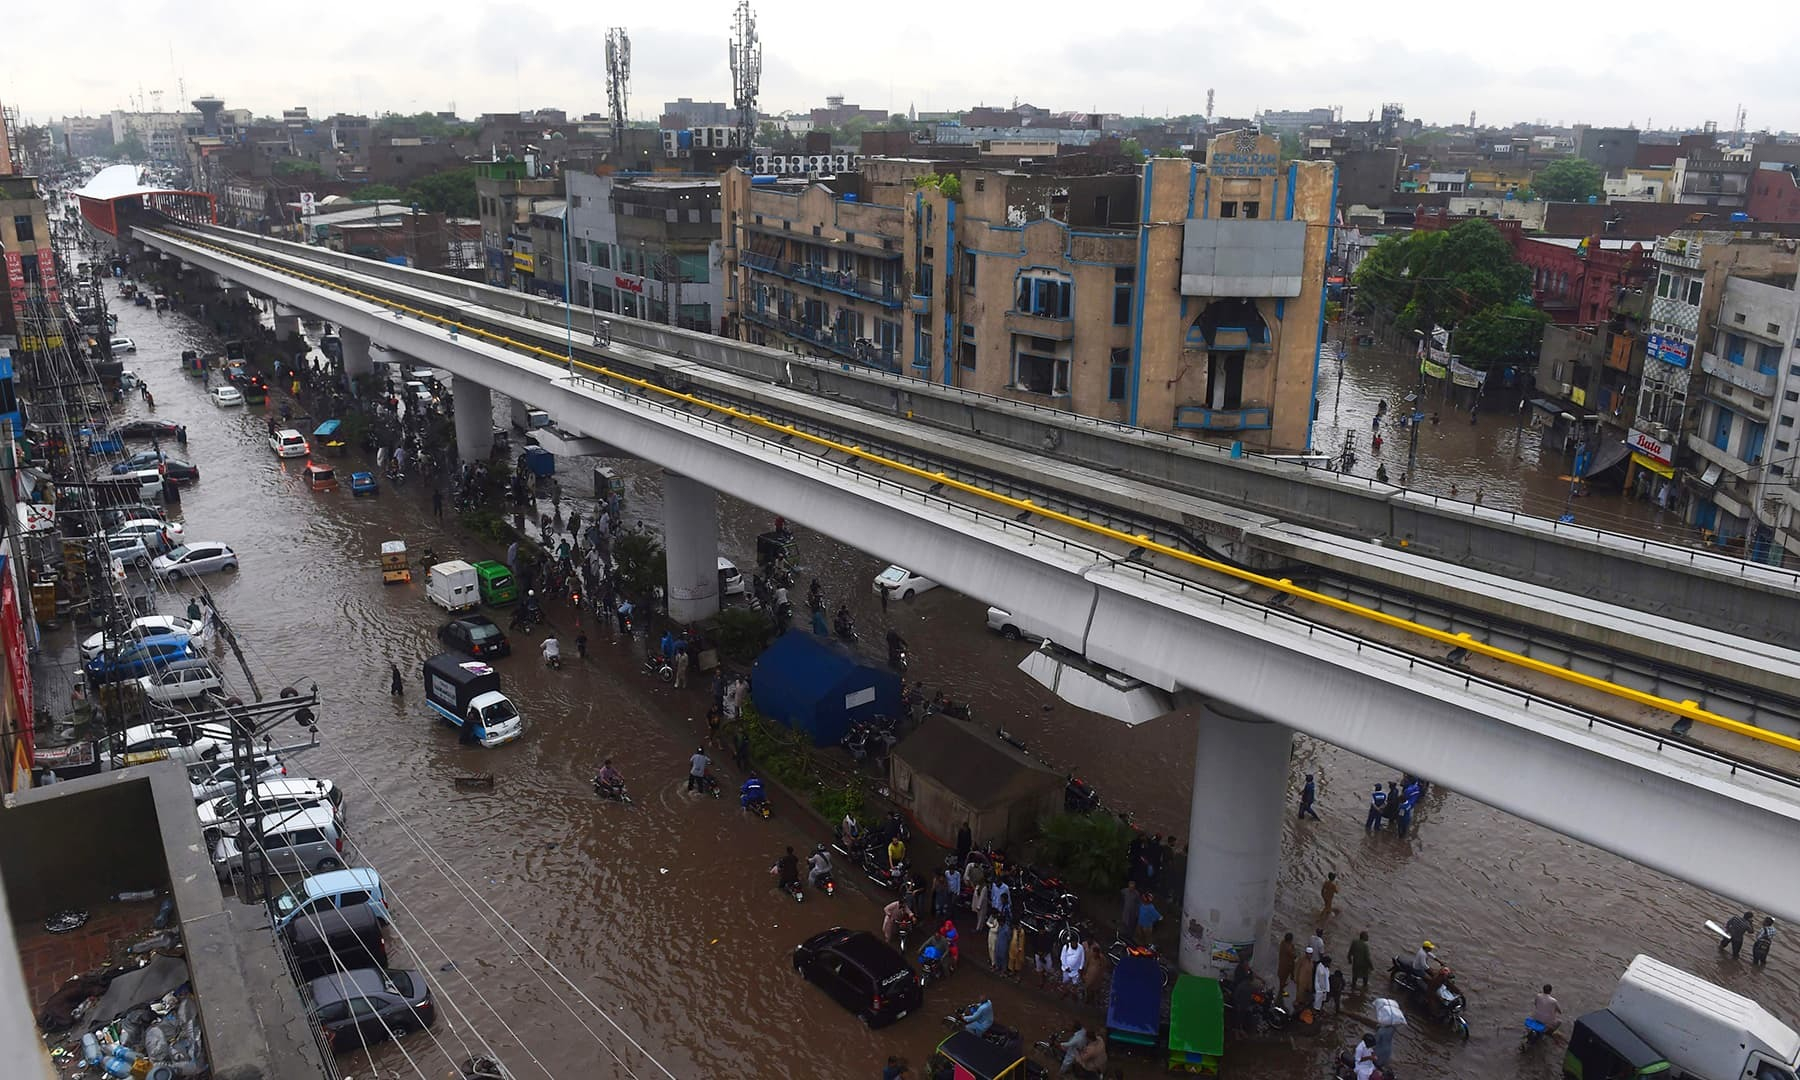 Pakistani commuters and pedestrians cross a flooded street after heavy monsoon rains in Lahore on July 16, 2019. - In Pakistan-administered Kashmir, officials said at least 23 people were killed after heavy rain triggered flash floods and damaged more than 120 houses and 30 shops, while crippling the water and electricity supplies. (Photo by ARIF ALI / AFP) — AFP or licensors